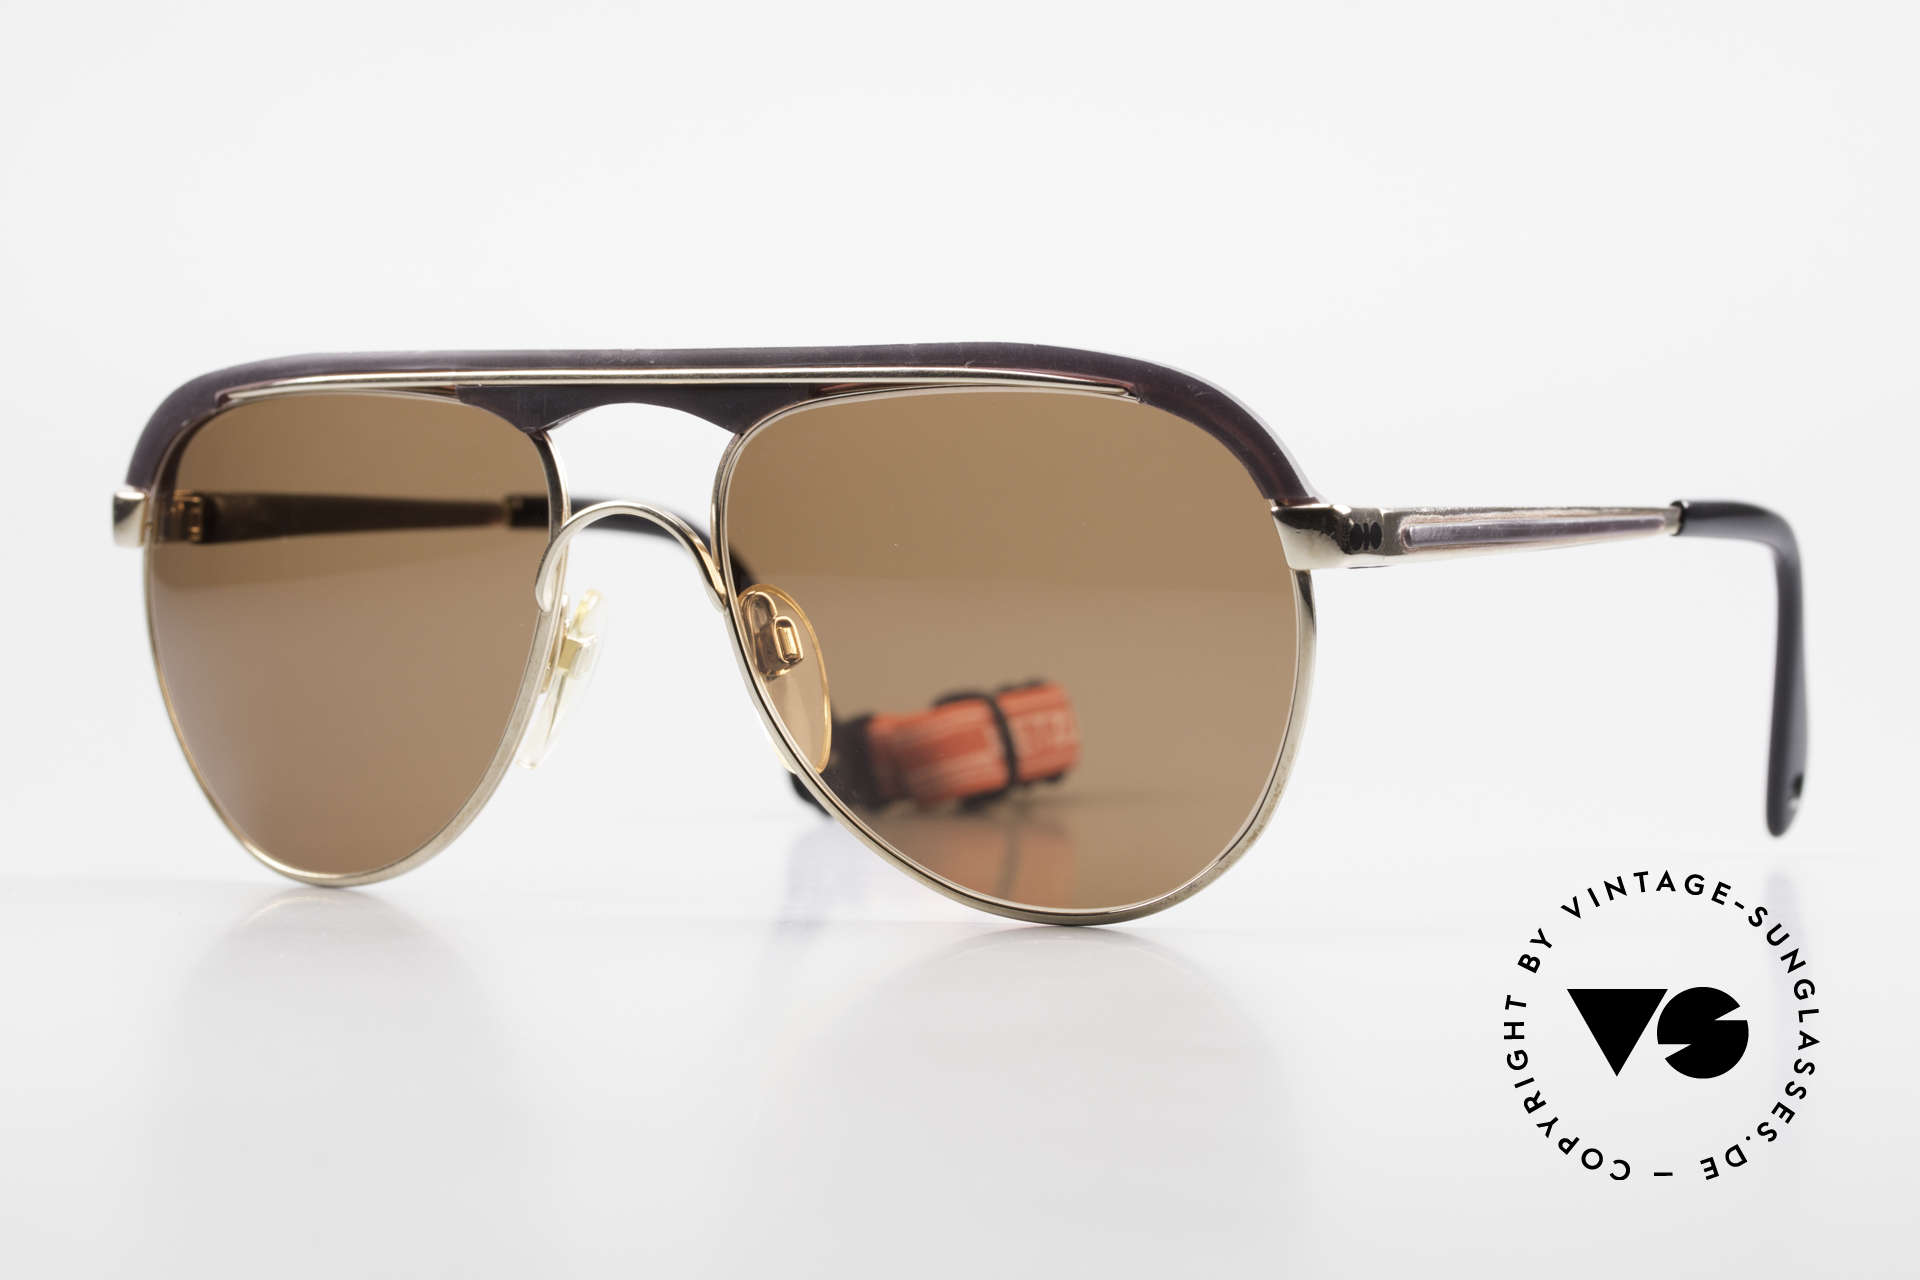 Metzler 0250 True Vintage 80's Sports Shades, Metzler 'sport design' sunglasses from the early 1980's, Made for Men